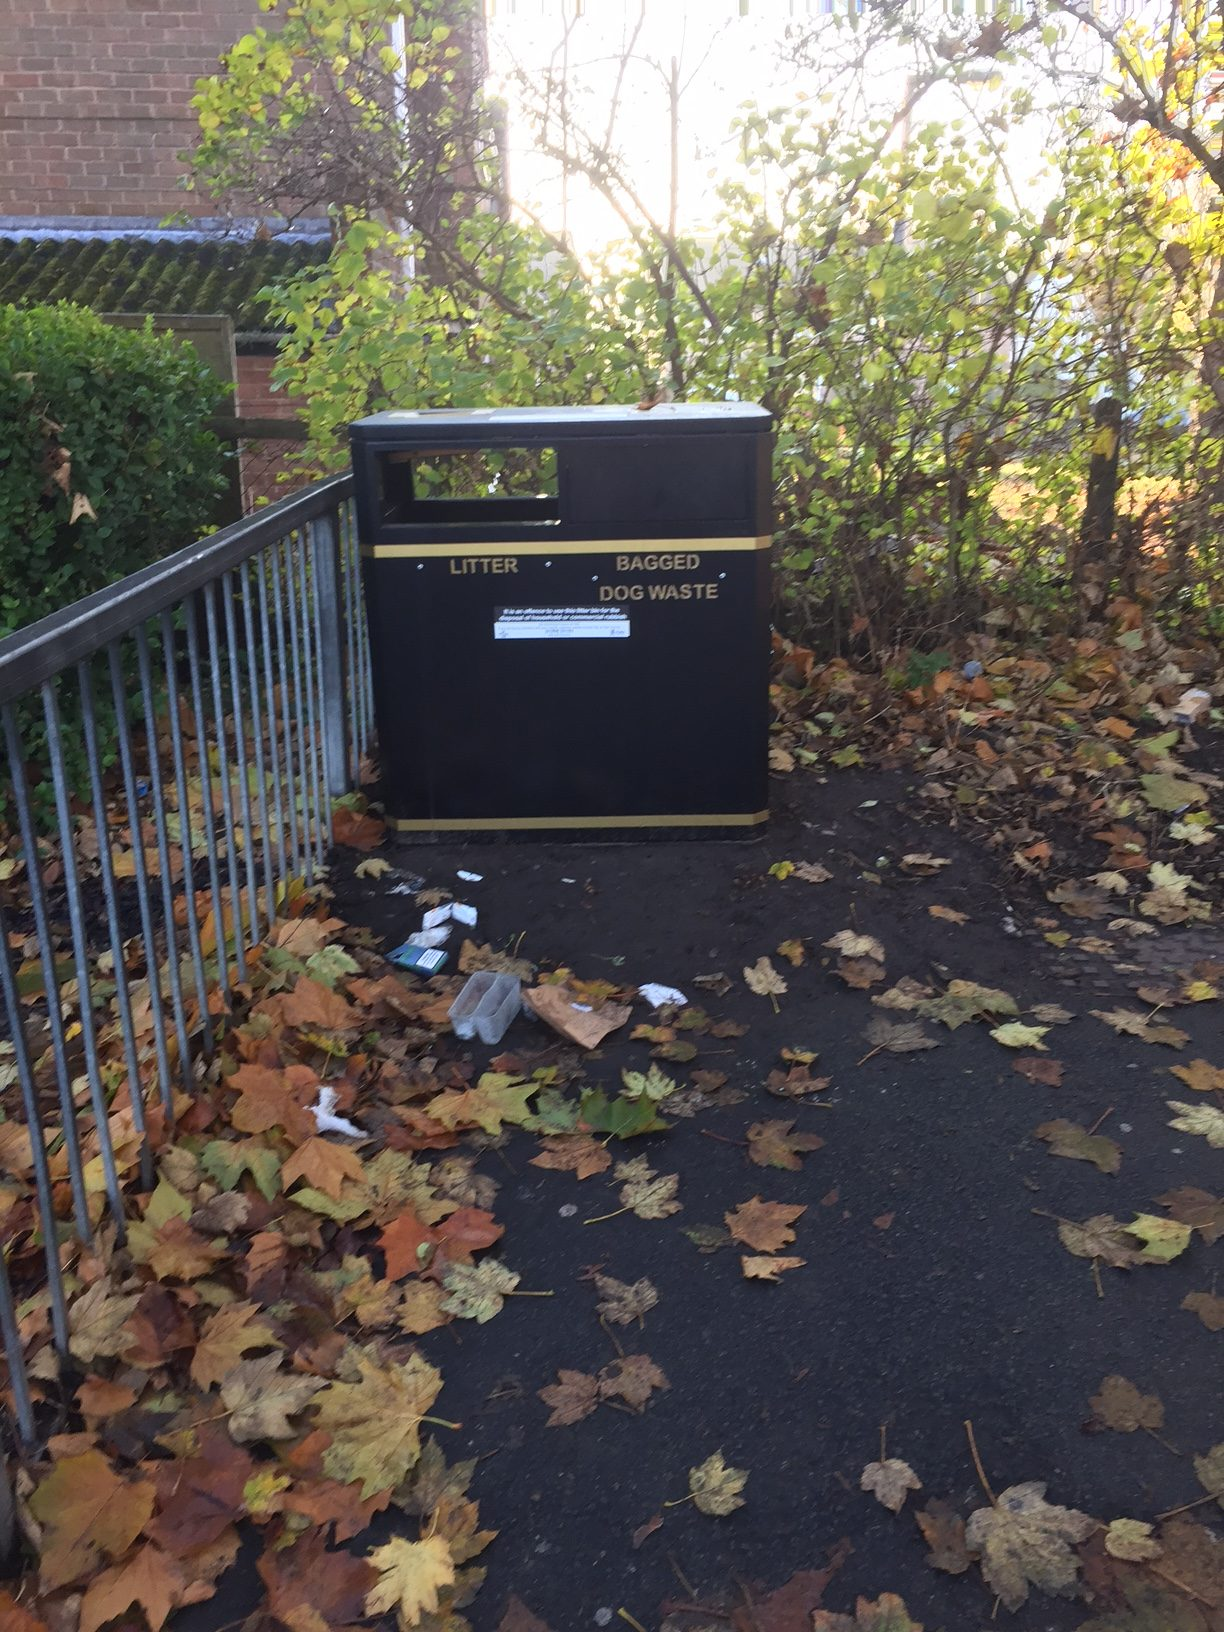 A new litter bin was installed in the Lowfields area